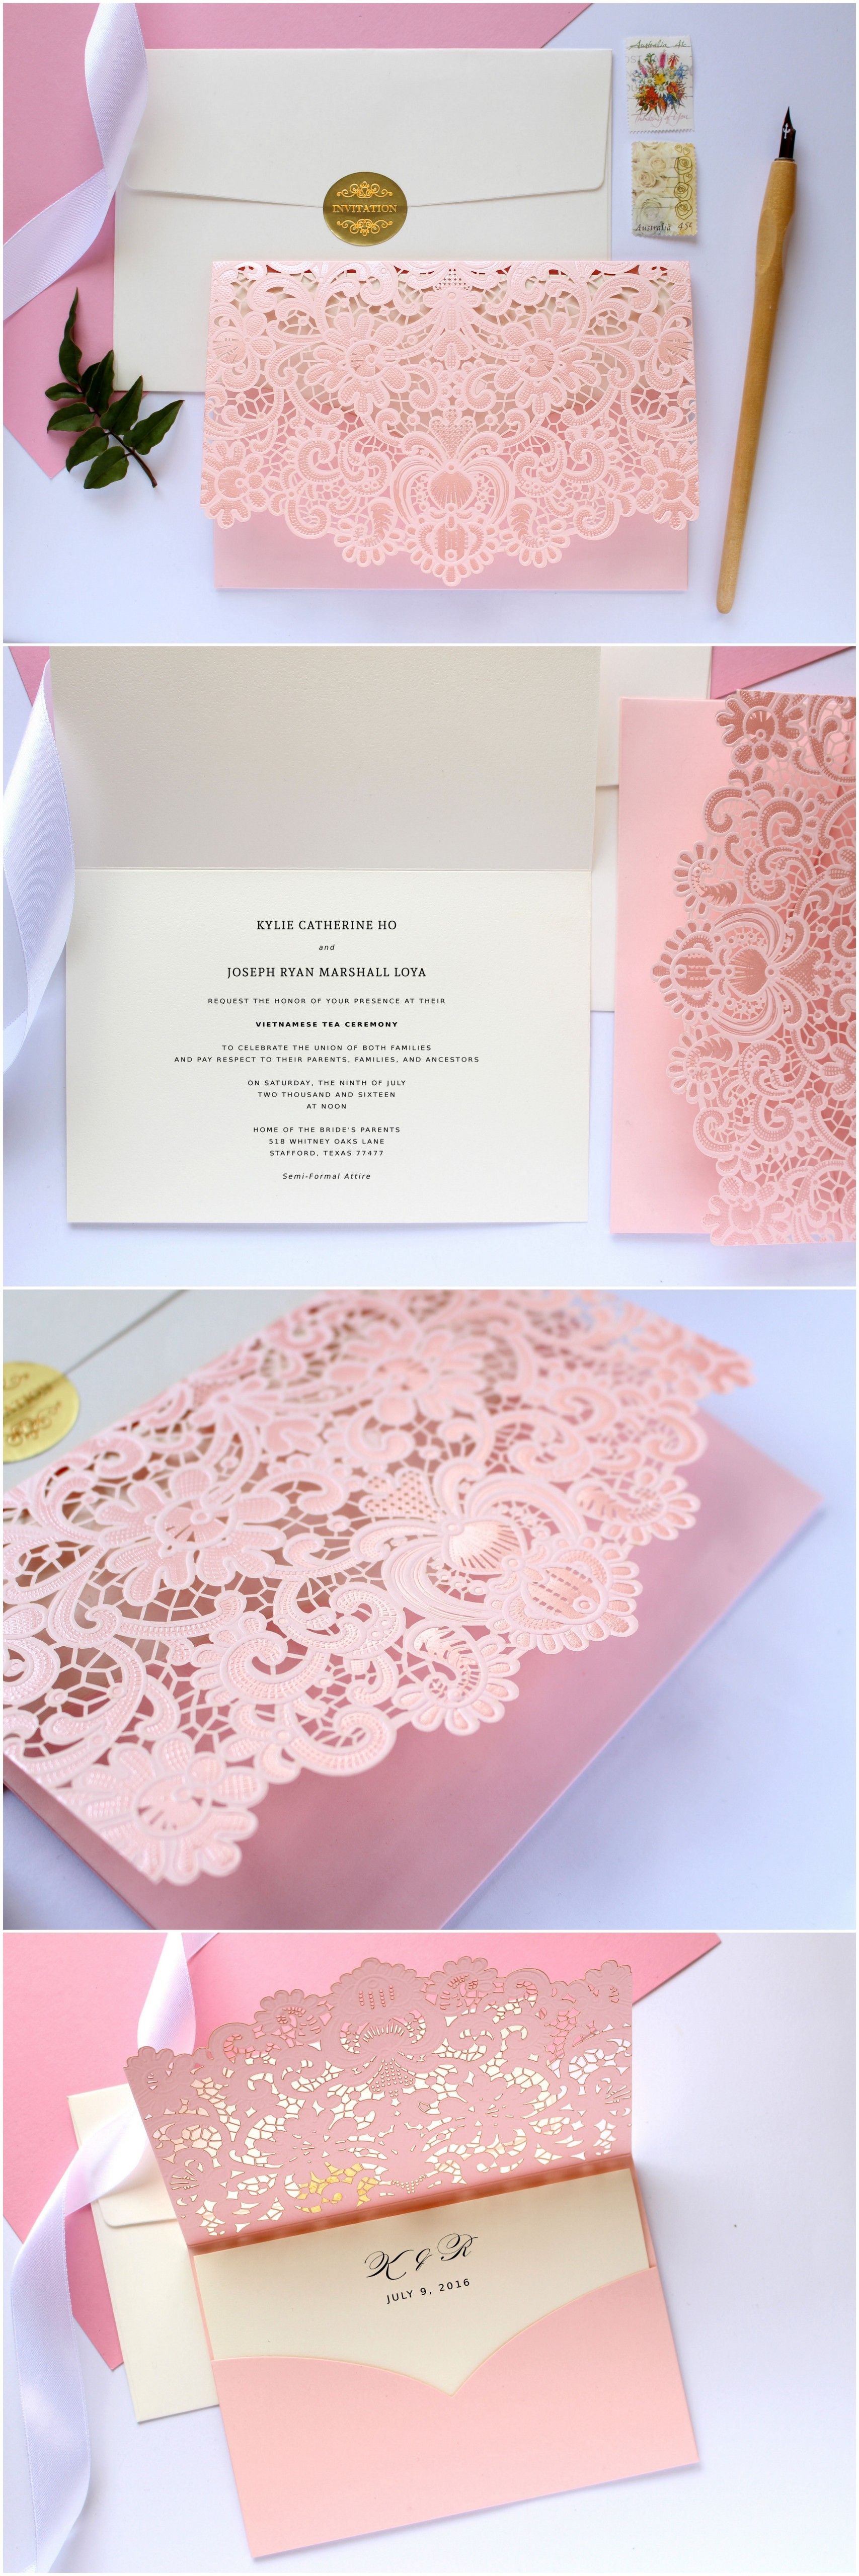 paper cut wedding invitations uk%0A Blush pink laser cut wedding invitation  how pretty